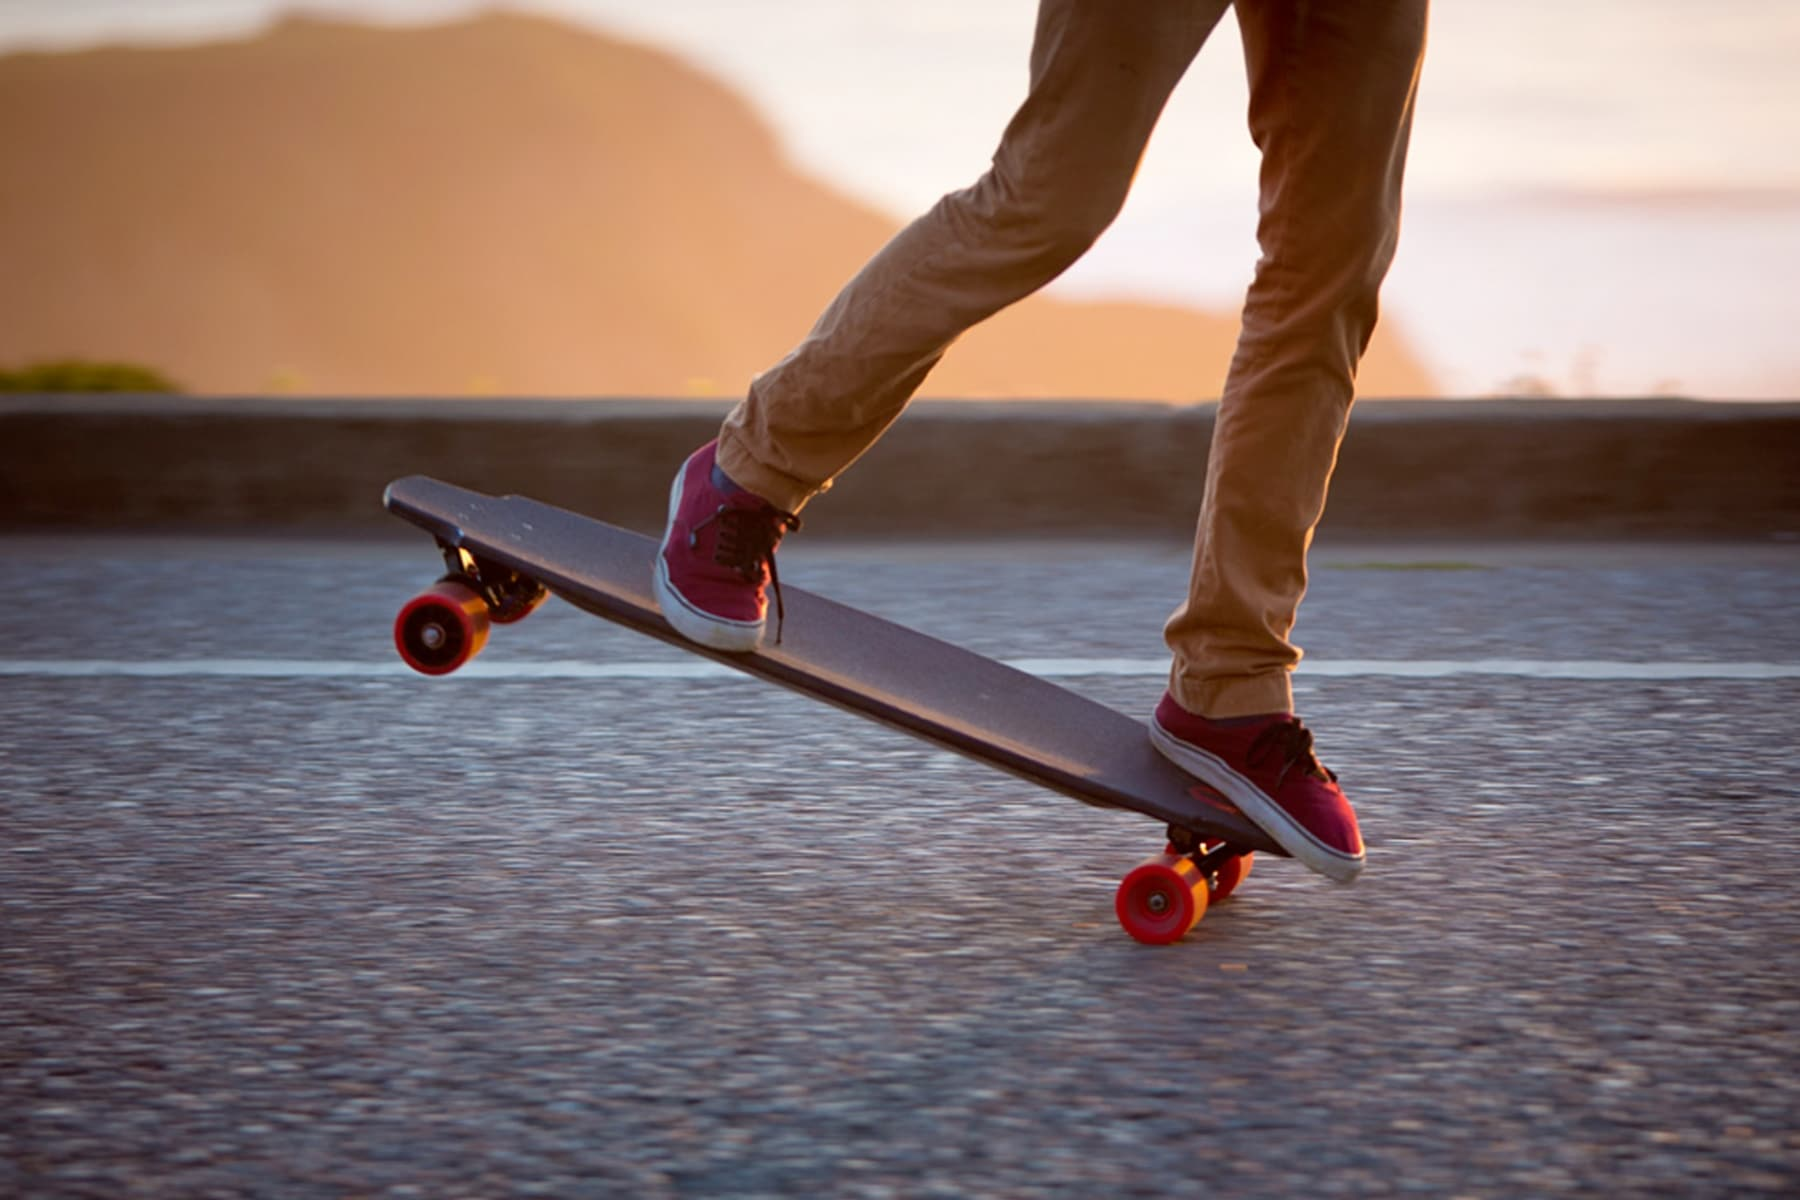 10 Most Popular Electric Skateboards for Teens [Buying Guide] 6